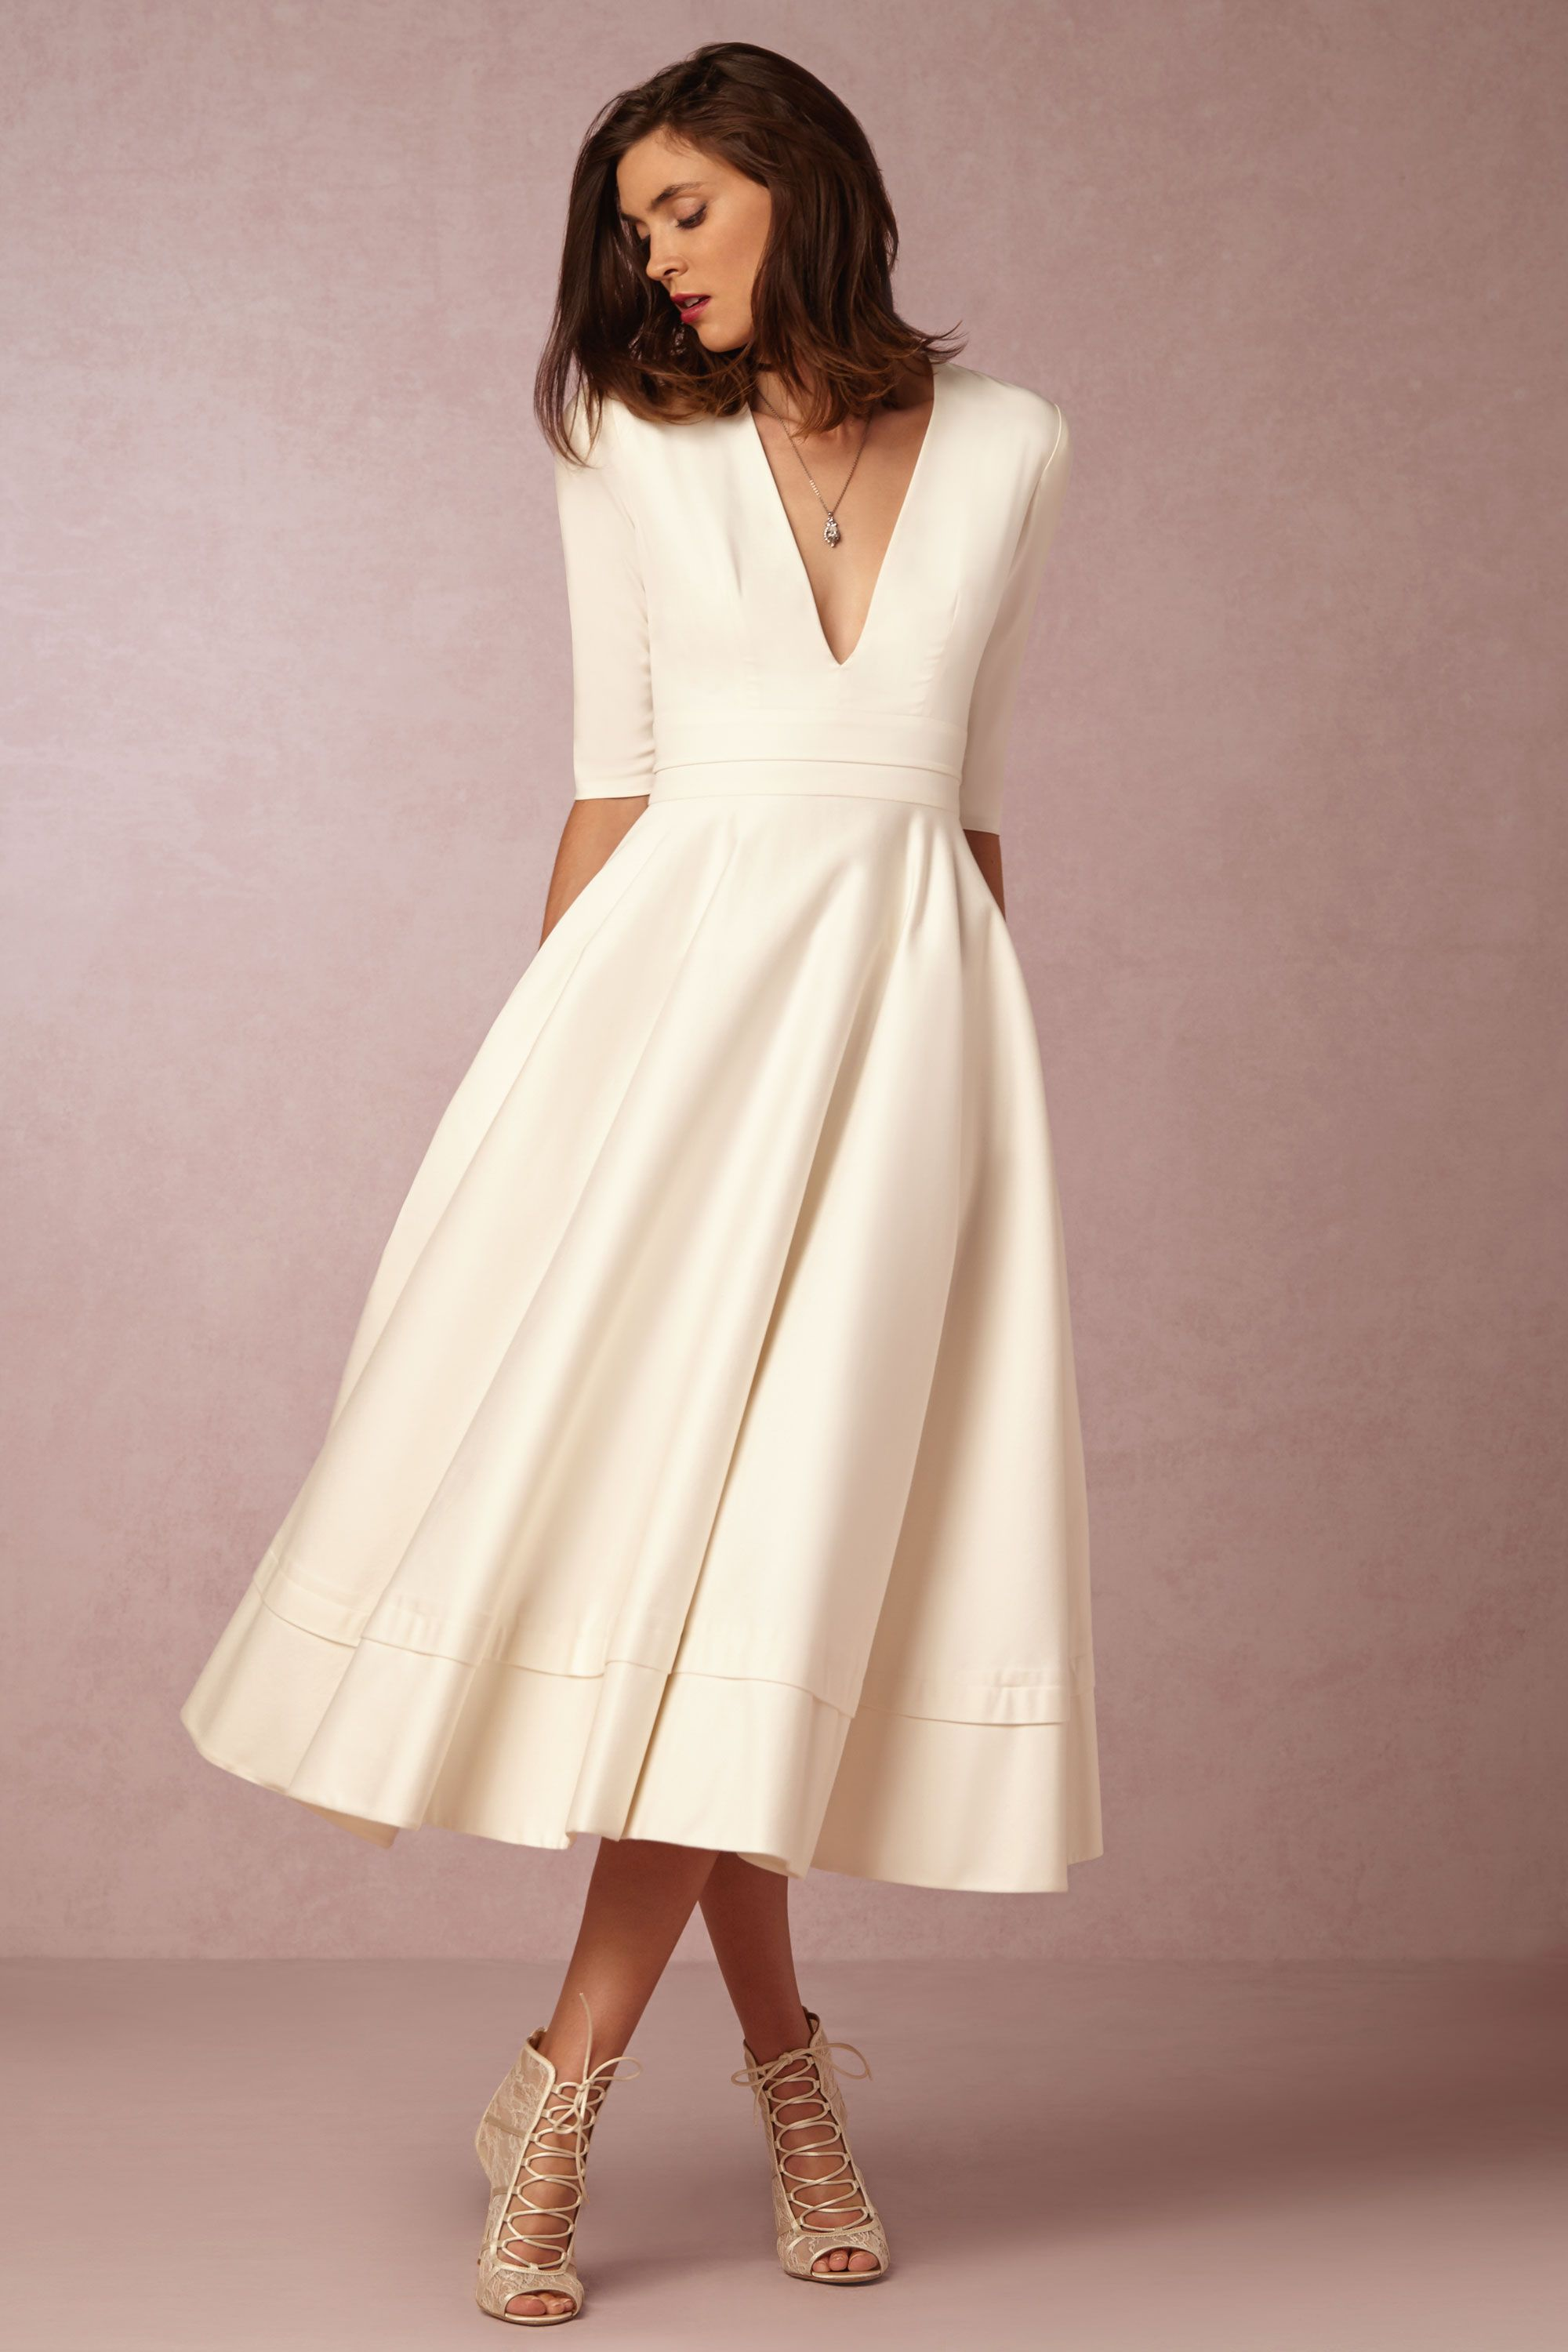 BHLDN\'s Delphine Manivet Prospere Gown in Ivory | Pinterest | Gowns ...